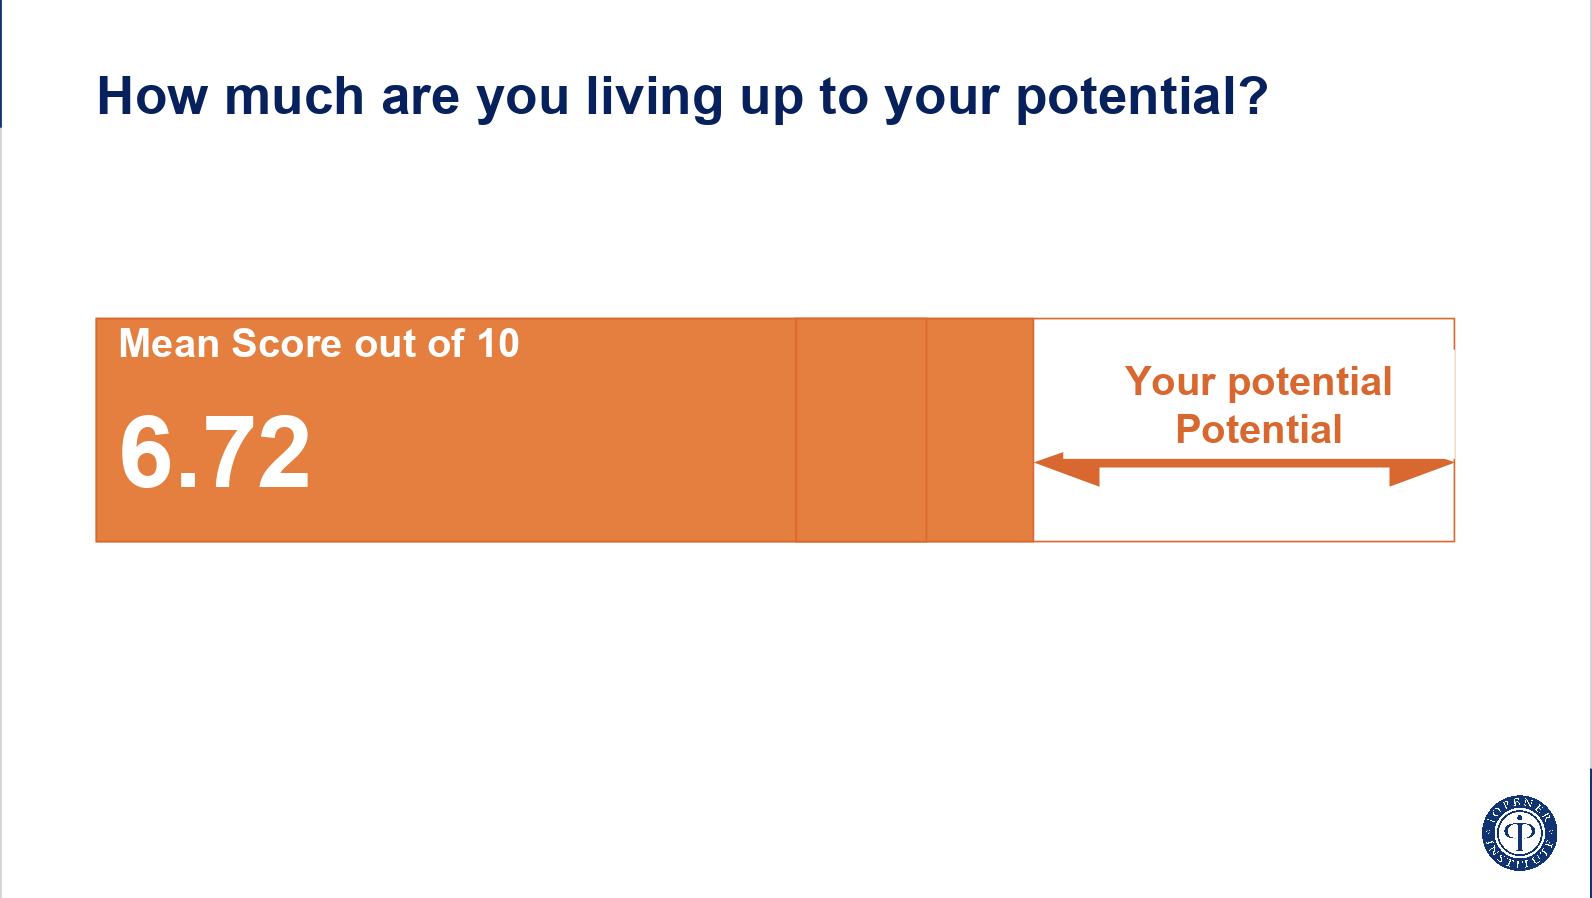 Graph to show how you're living up to your potential